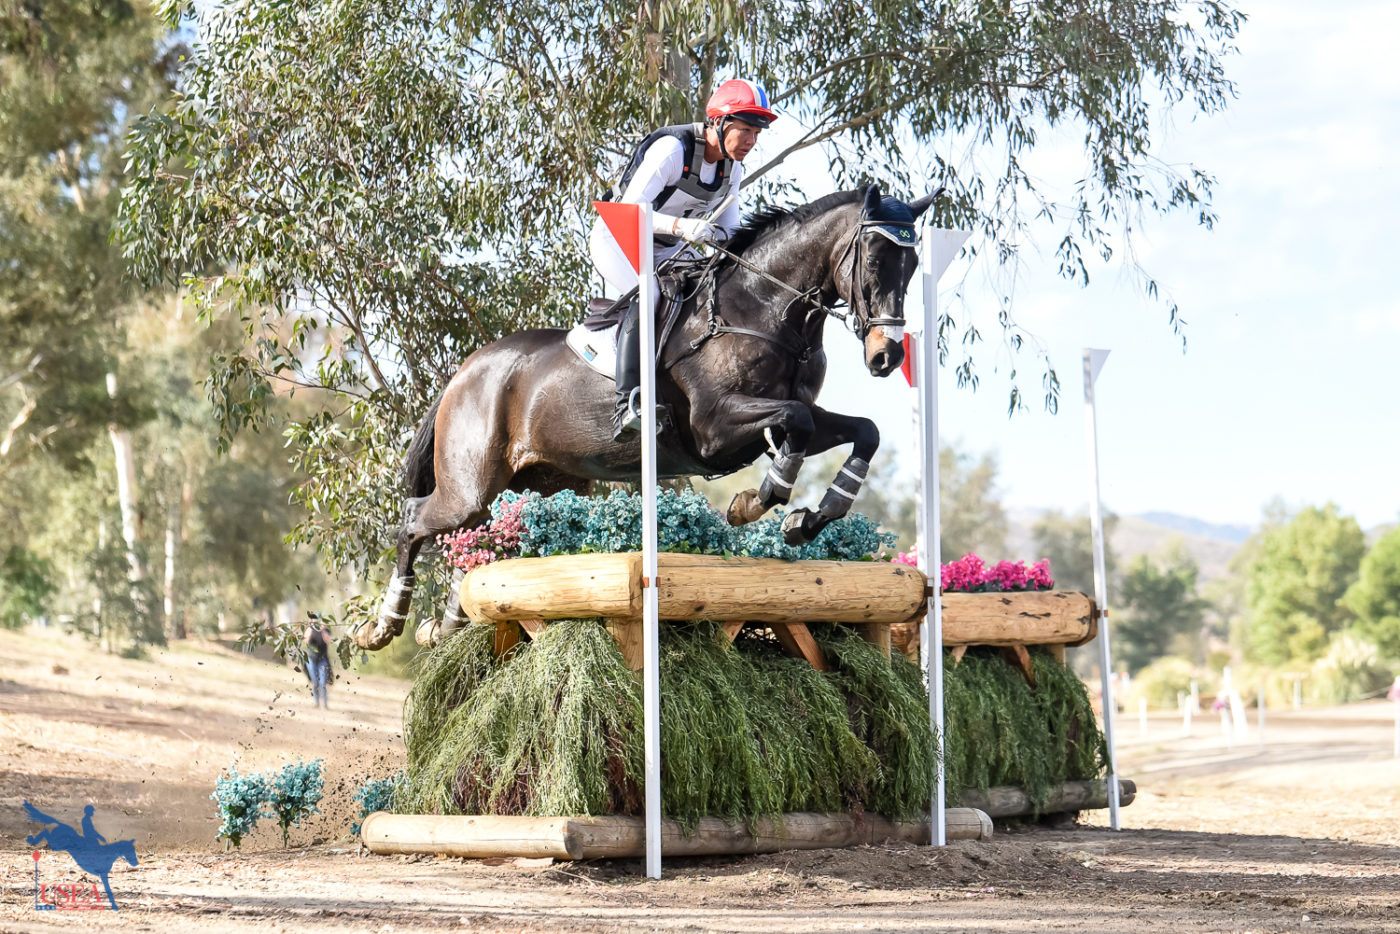 CCI3*-L 4thT - Tamra Smith and No App for That - 36.2